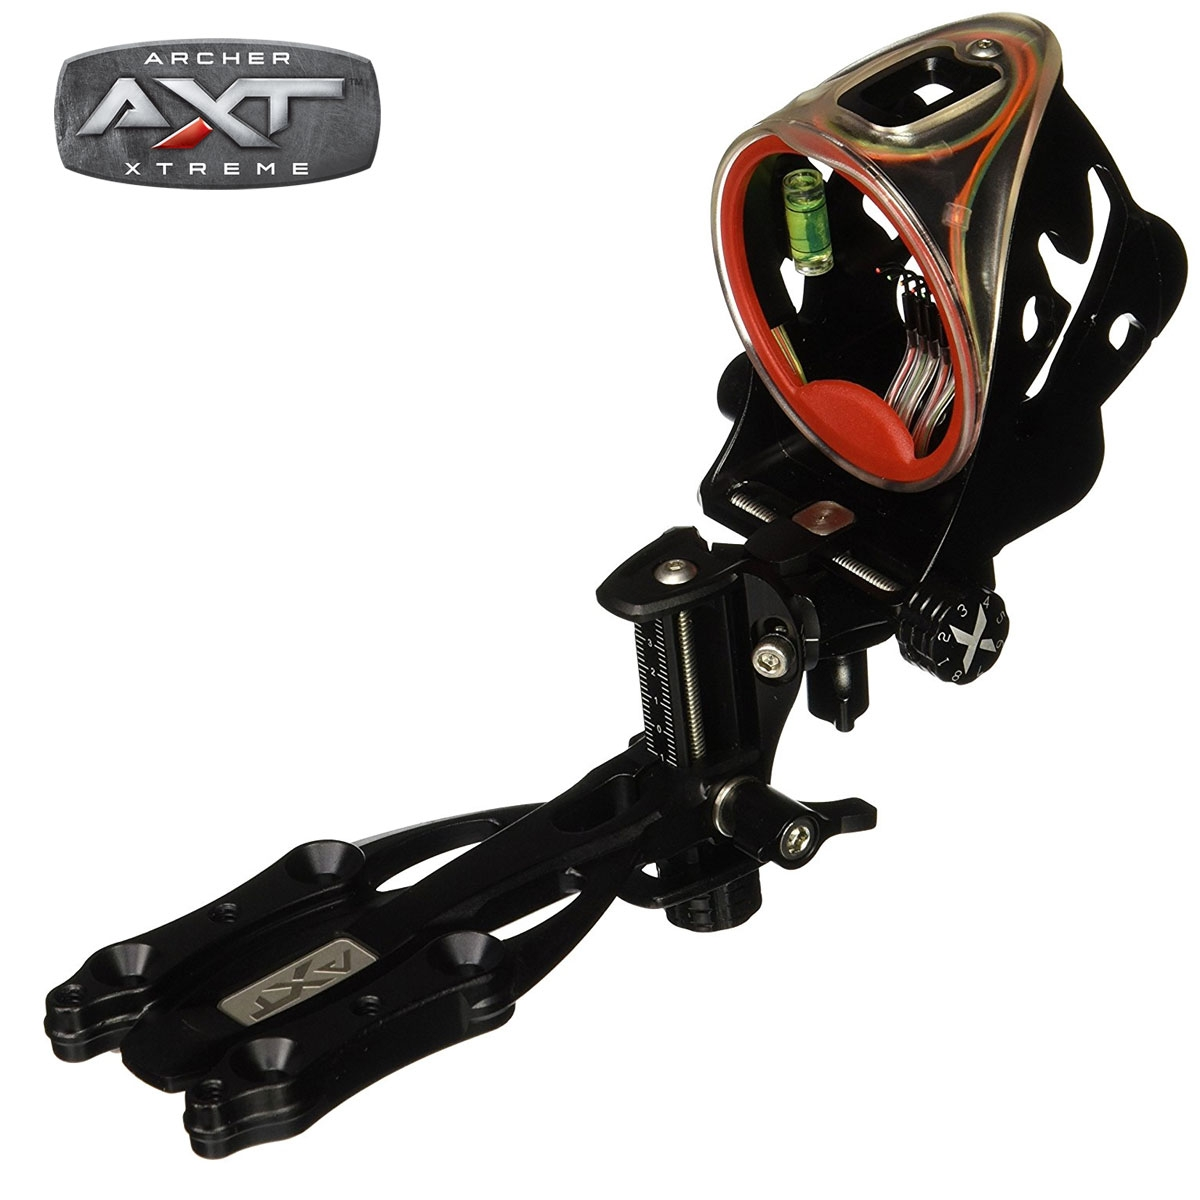 AXT Rogue 5-Pin Bow Sight w/Red Sight Ring